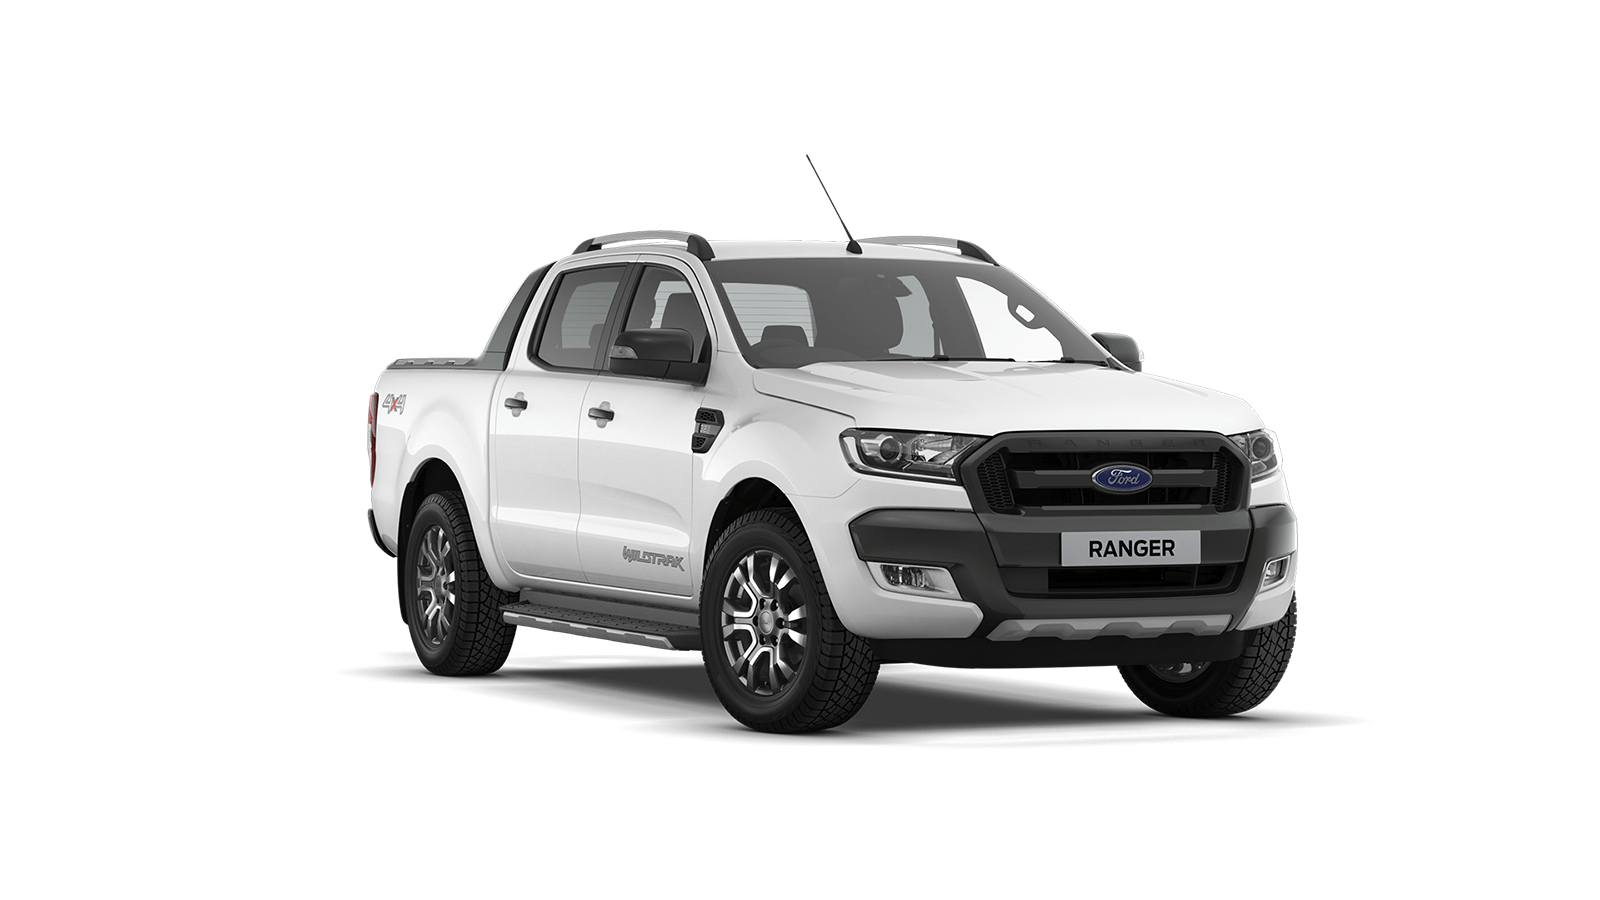 Ford Ranger at Ludham Garage